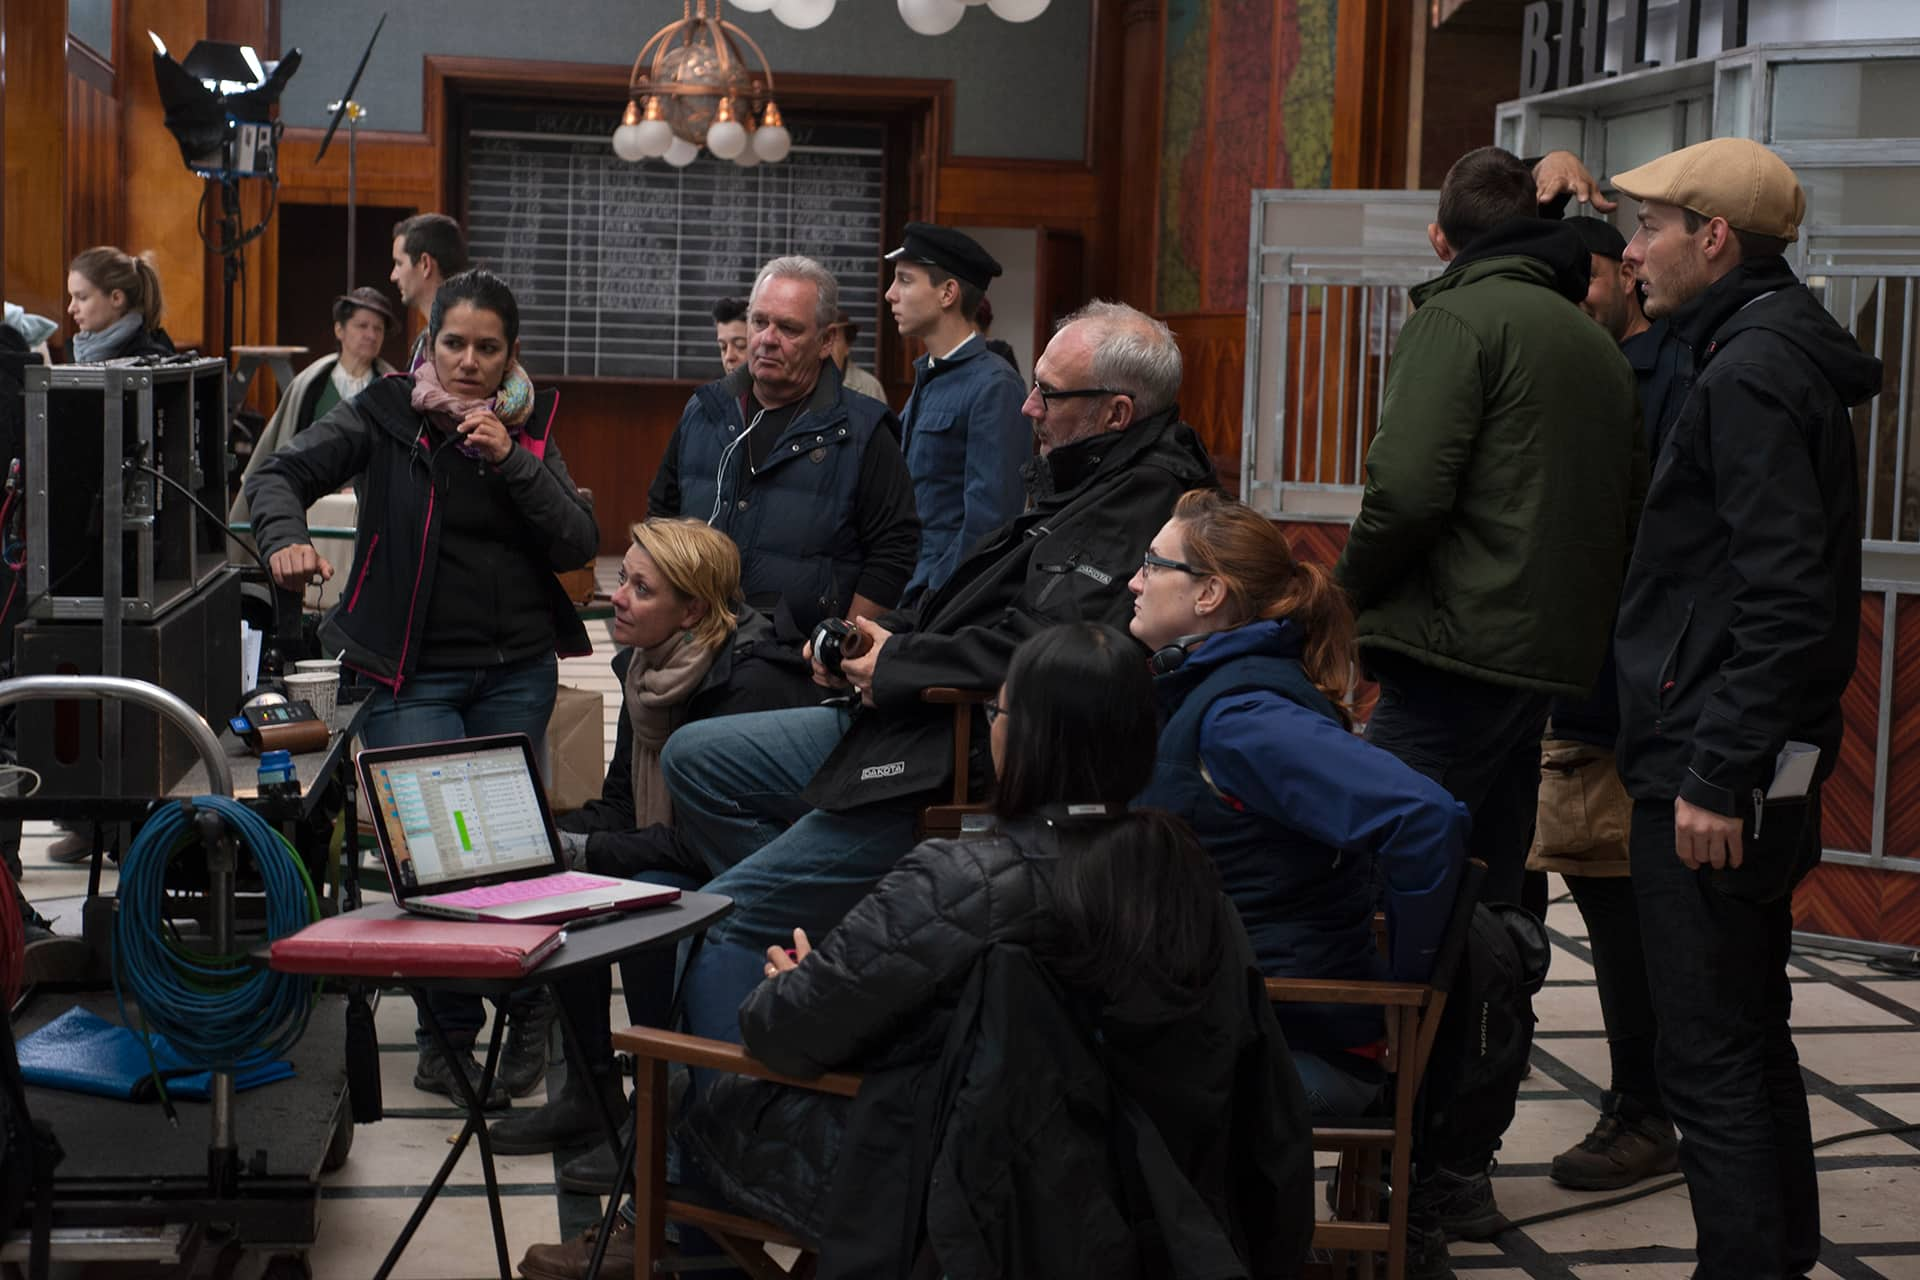 At video village on the set of X Company Season 3 with Director Amanda Tapping, AD Emese Matuz, Producer John Calvert, DOP Michael Marshall, Writer-Producer Julie Puckrin and Script Supervisor Winnie Jong.